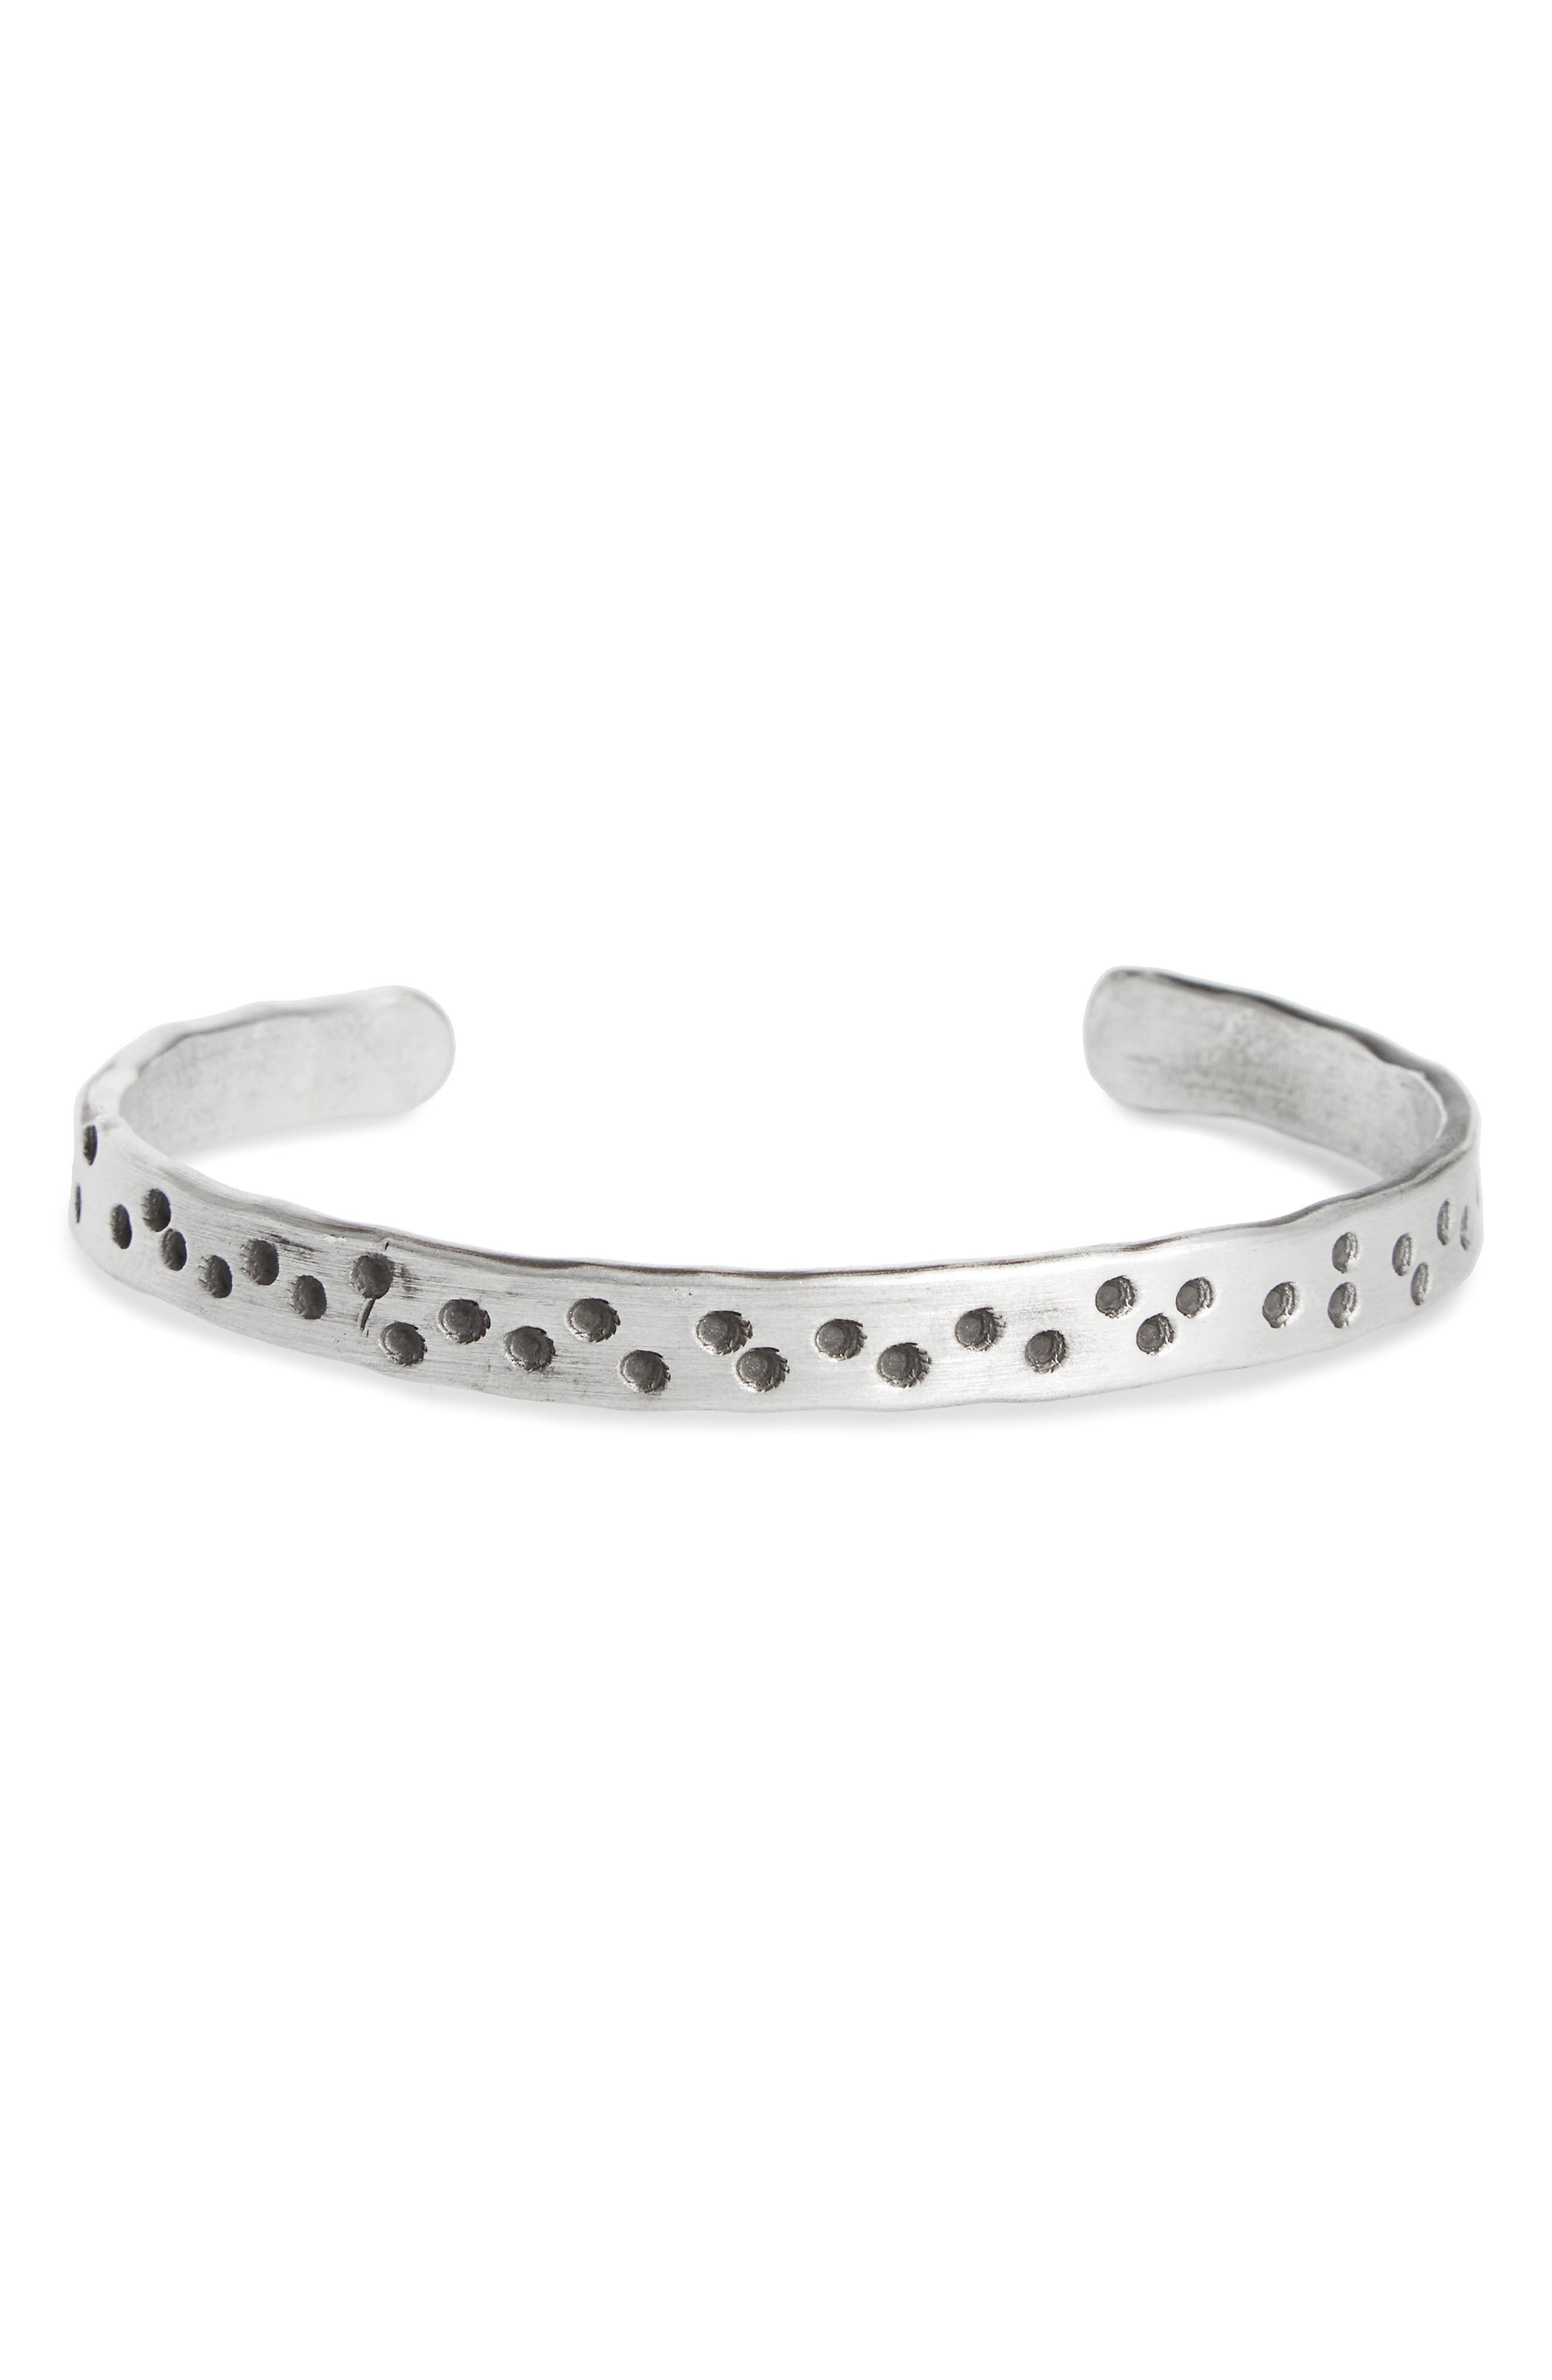 Cause & Effect Sterling Silver Cuff Bracelet,                         Main,                         color, Silver